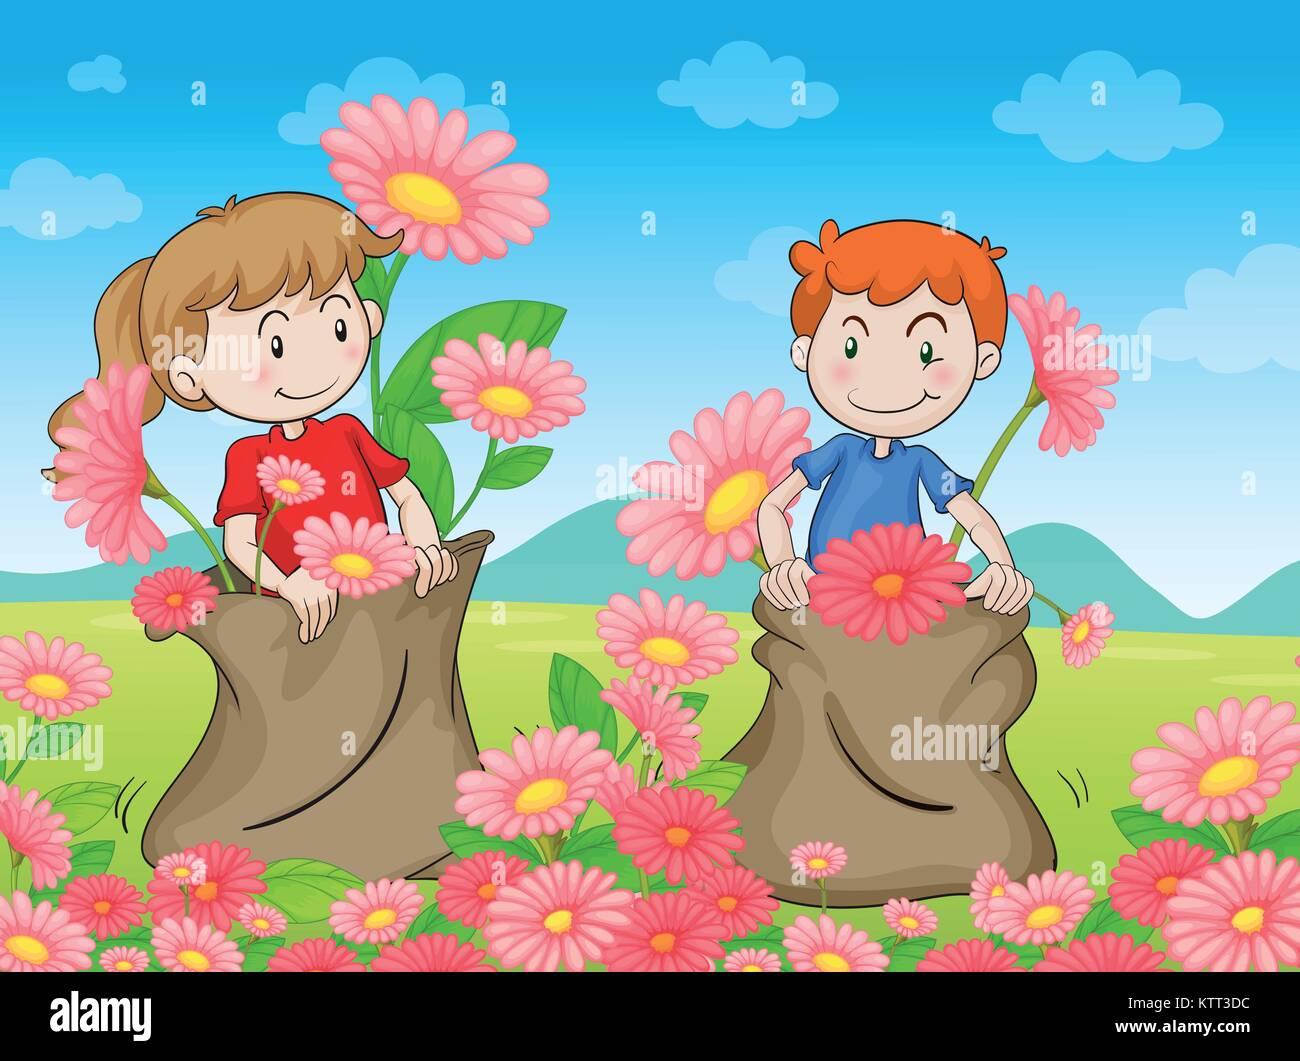 illustration of kids and flowers in a beautiful nature - Stock Vector